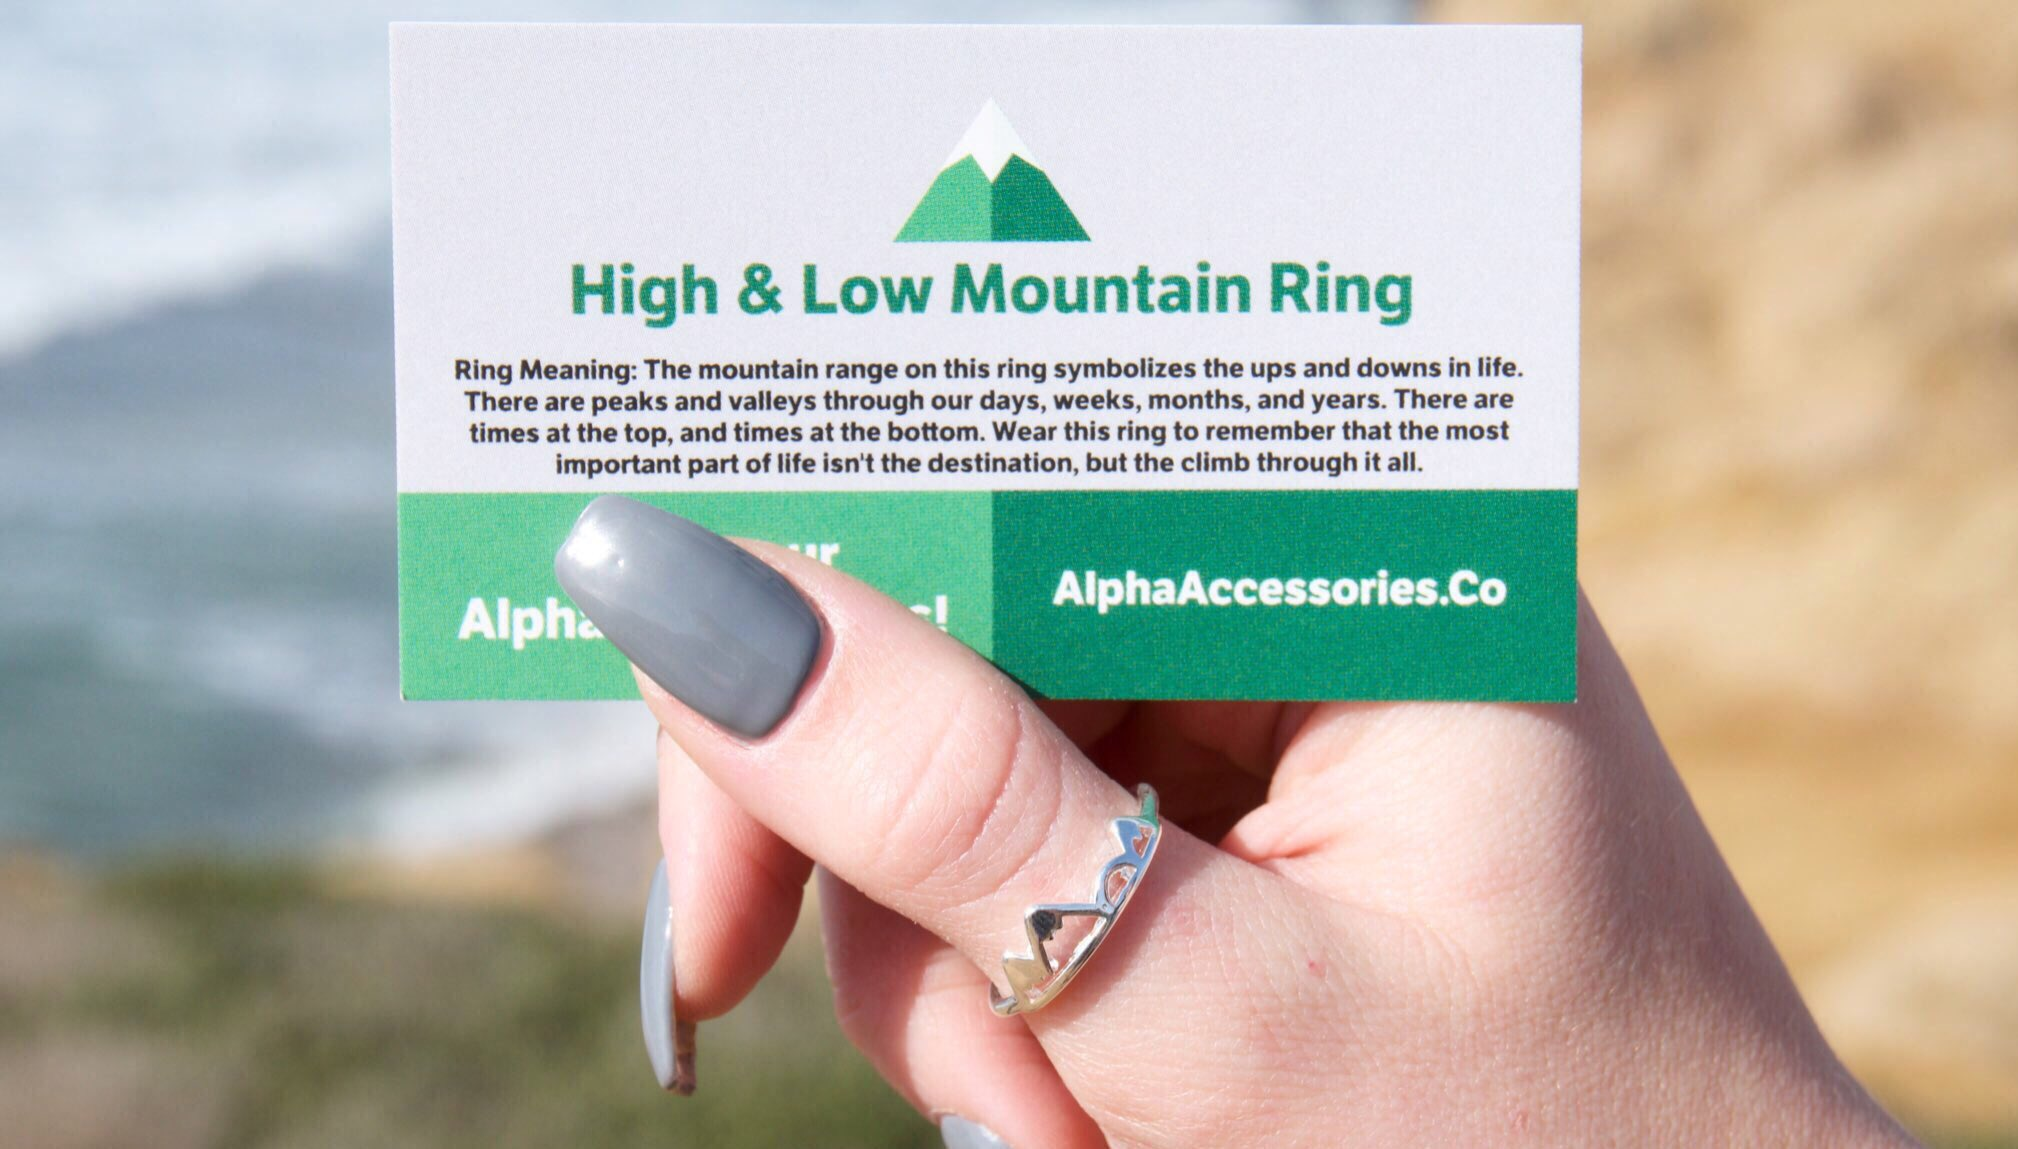 Neeed this high & low mountain ring from https://t.co/cYrLI2a8iV https://t.co/lNKDxejqXT